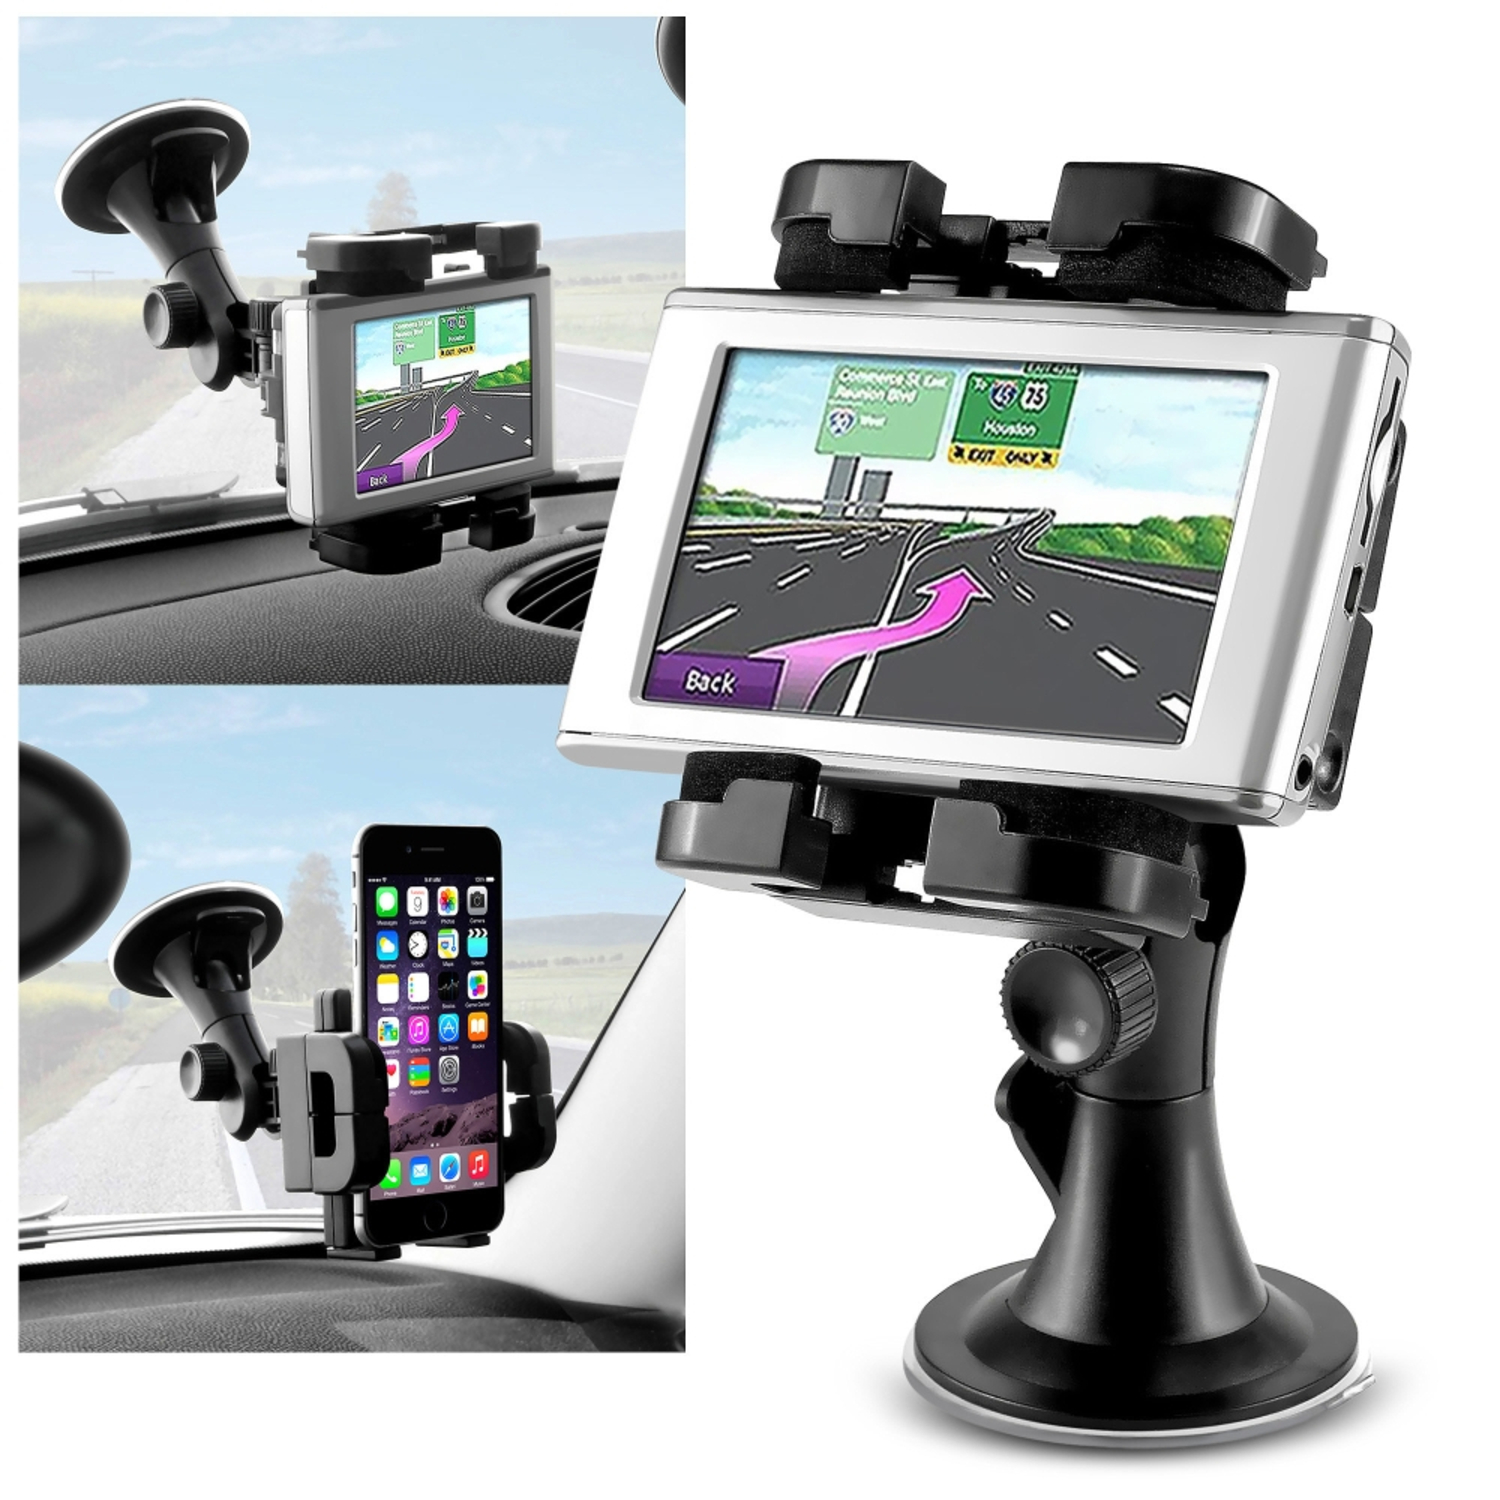 Insten Universal Car GPS Phone Windshield Holder Mount for iPhone 7 6S 6 6+ 7+ Plus 5S SE iPod Touch 6th / Samsung Galaxy Note 5 4 3 S7 S6 S5 S4 S3 Edge On5 J7 Core Prime / LG K7 G5 G4 G Stylo Stylus